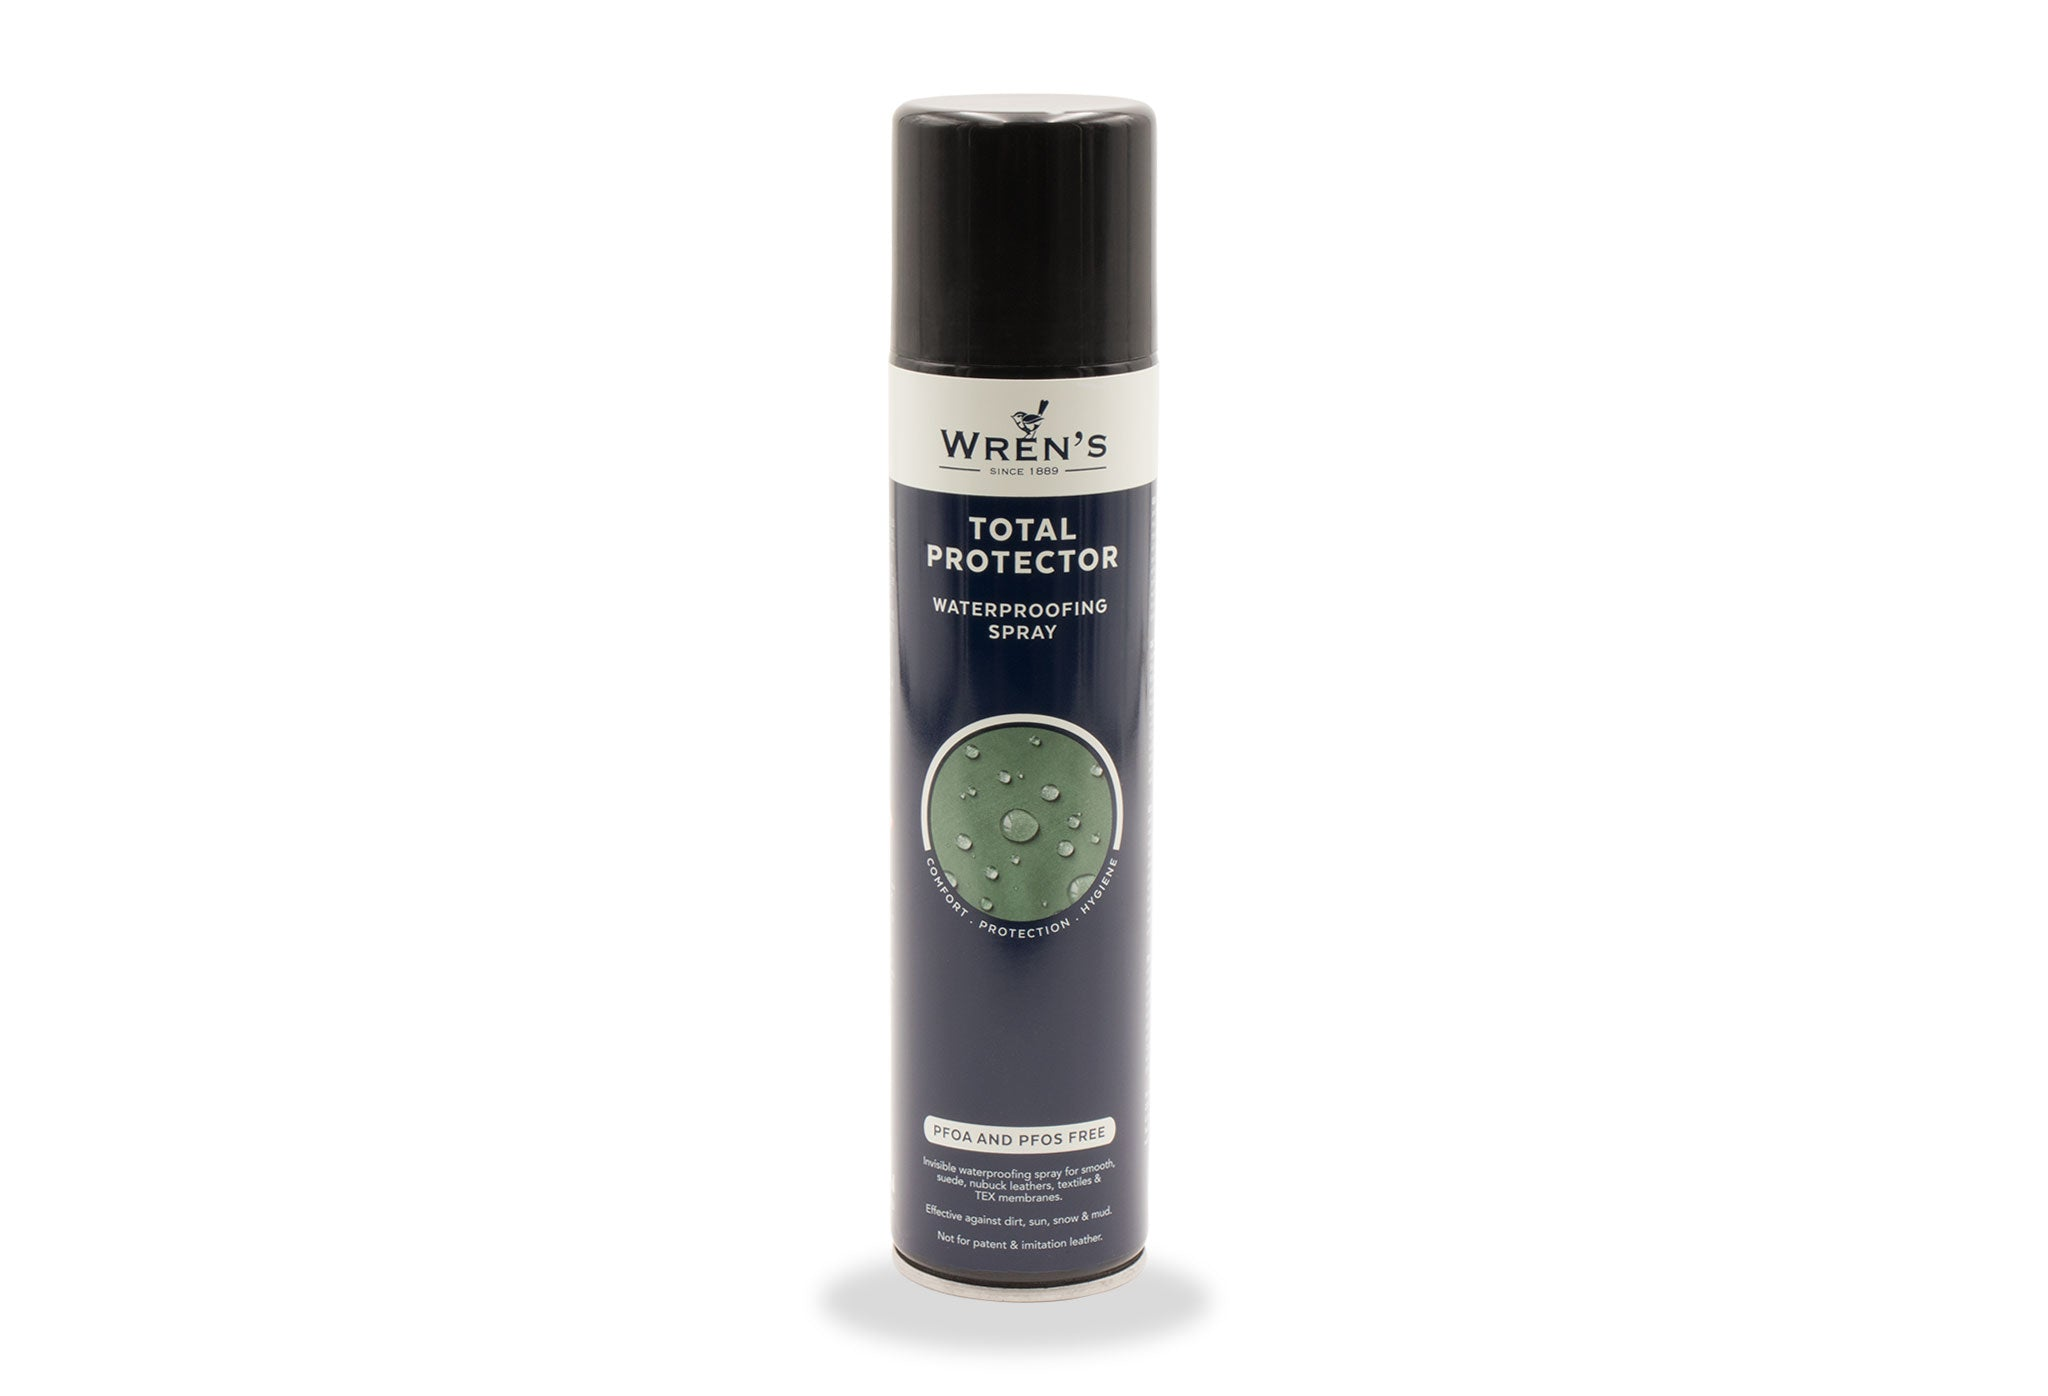 Wren's 1889 Waterproofing Spray